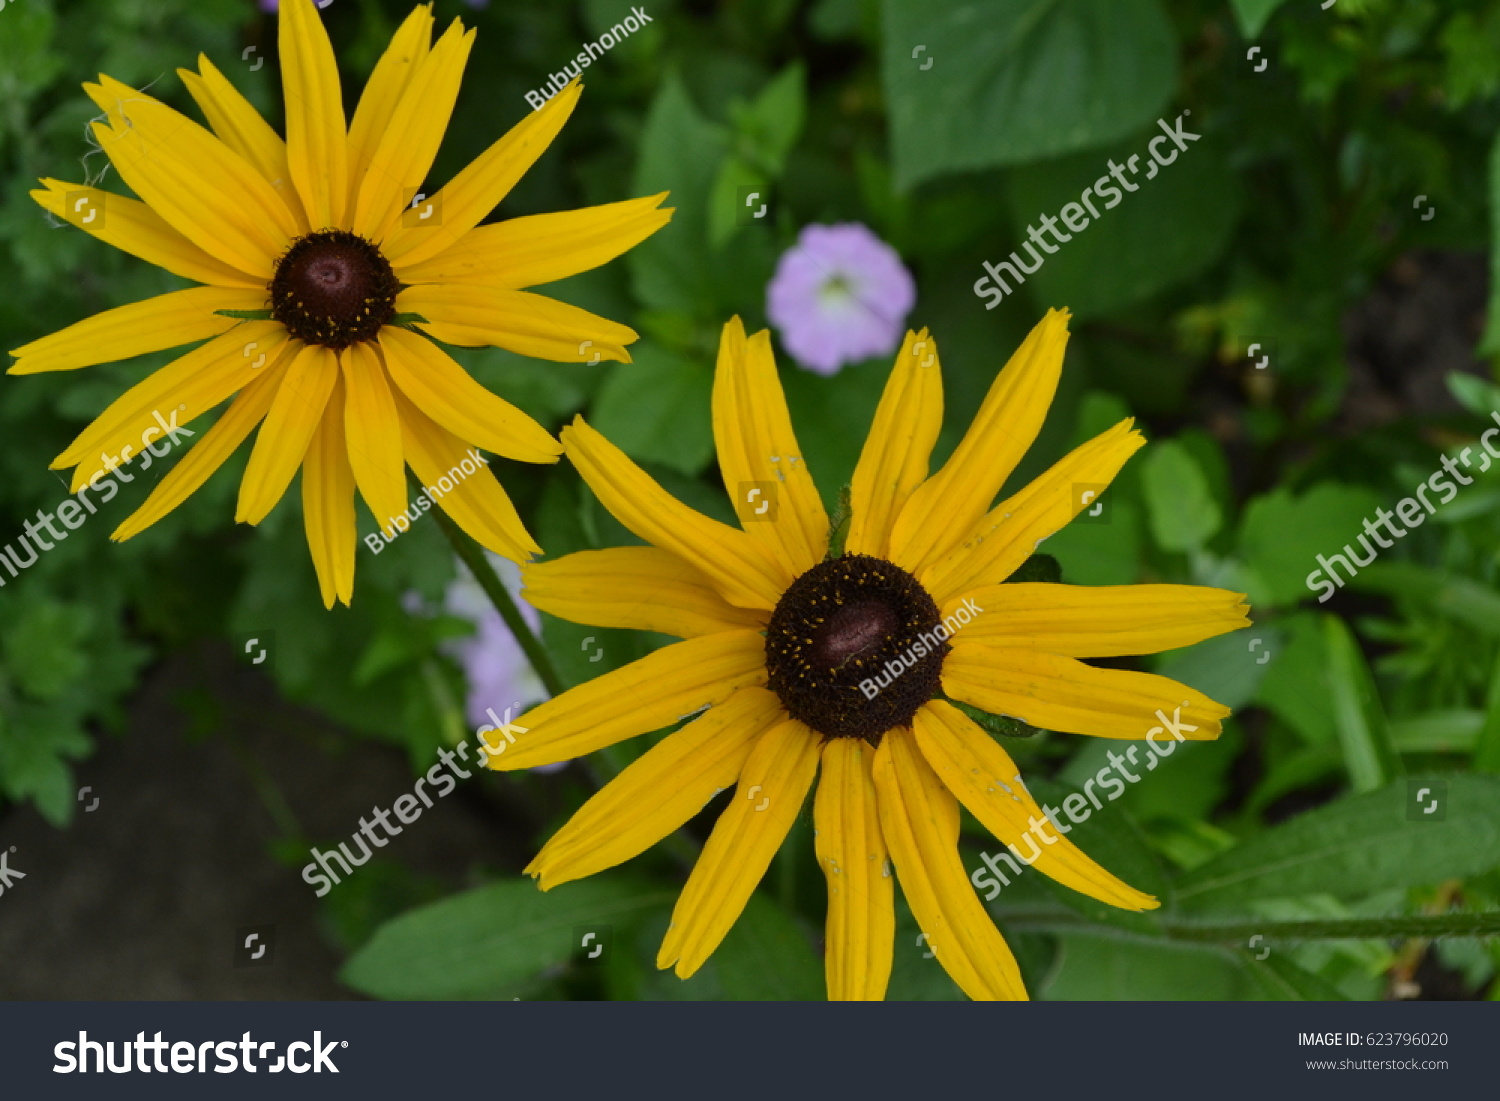 Rudbeckia perennial similar daisy tall flowers stock photo royalty similar to the daisy tall flowers flowers are yellow izmirmasajfo Choice Image